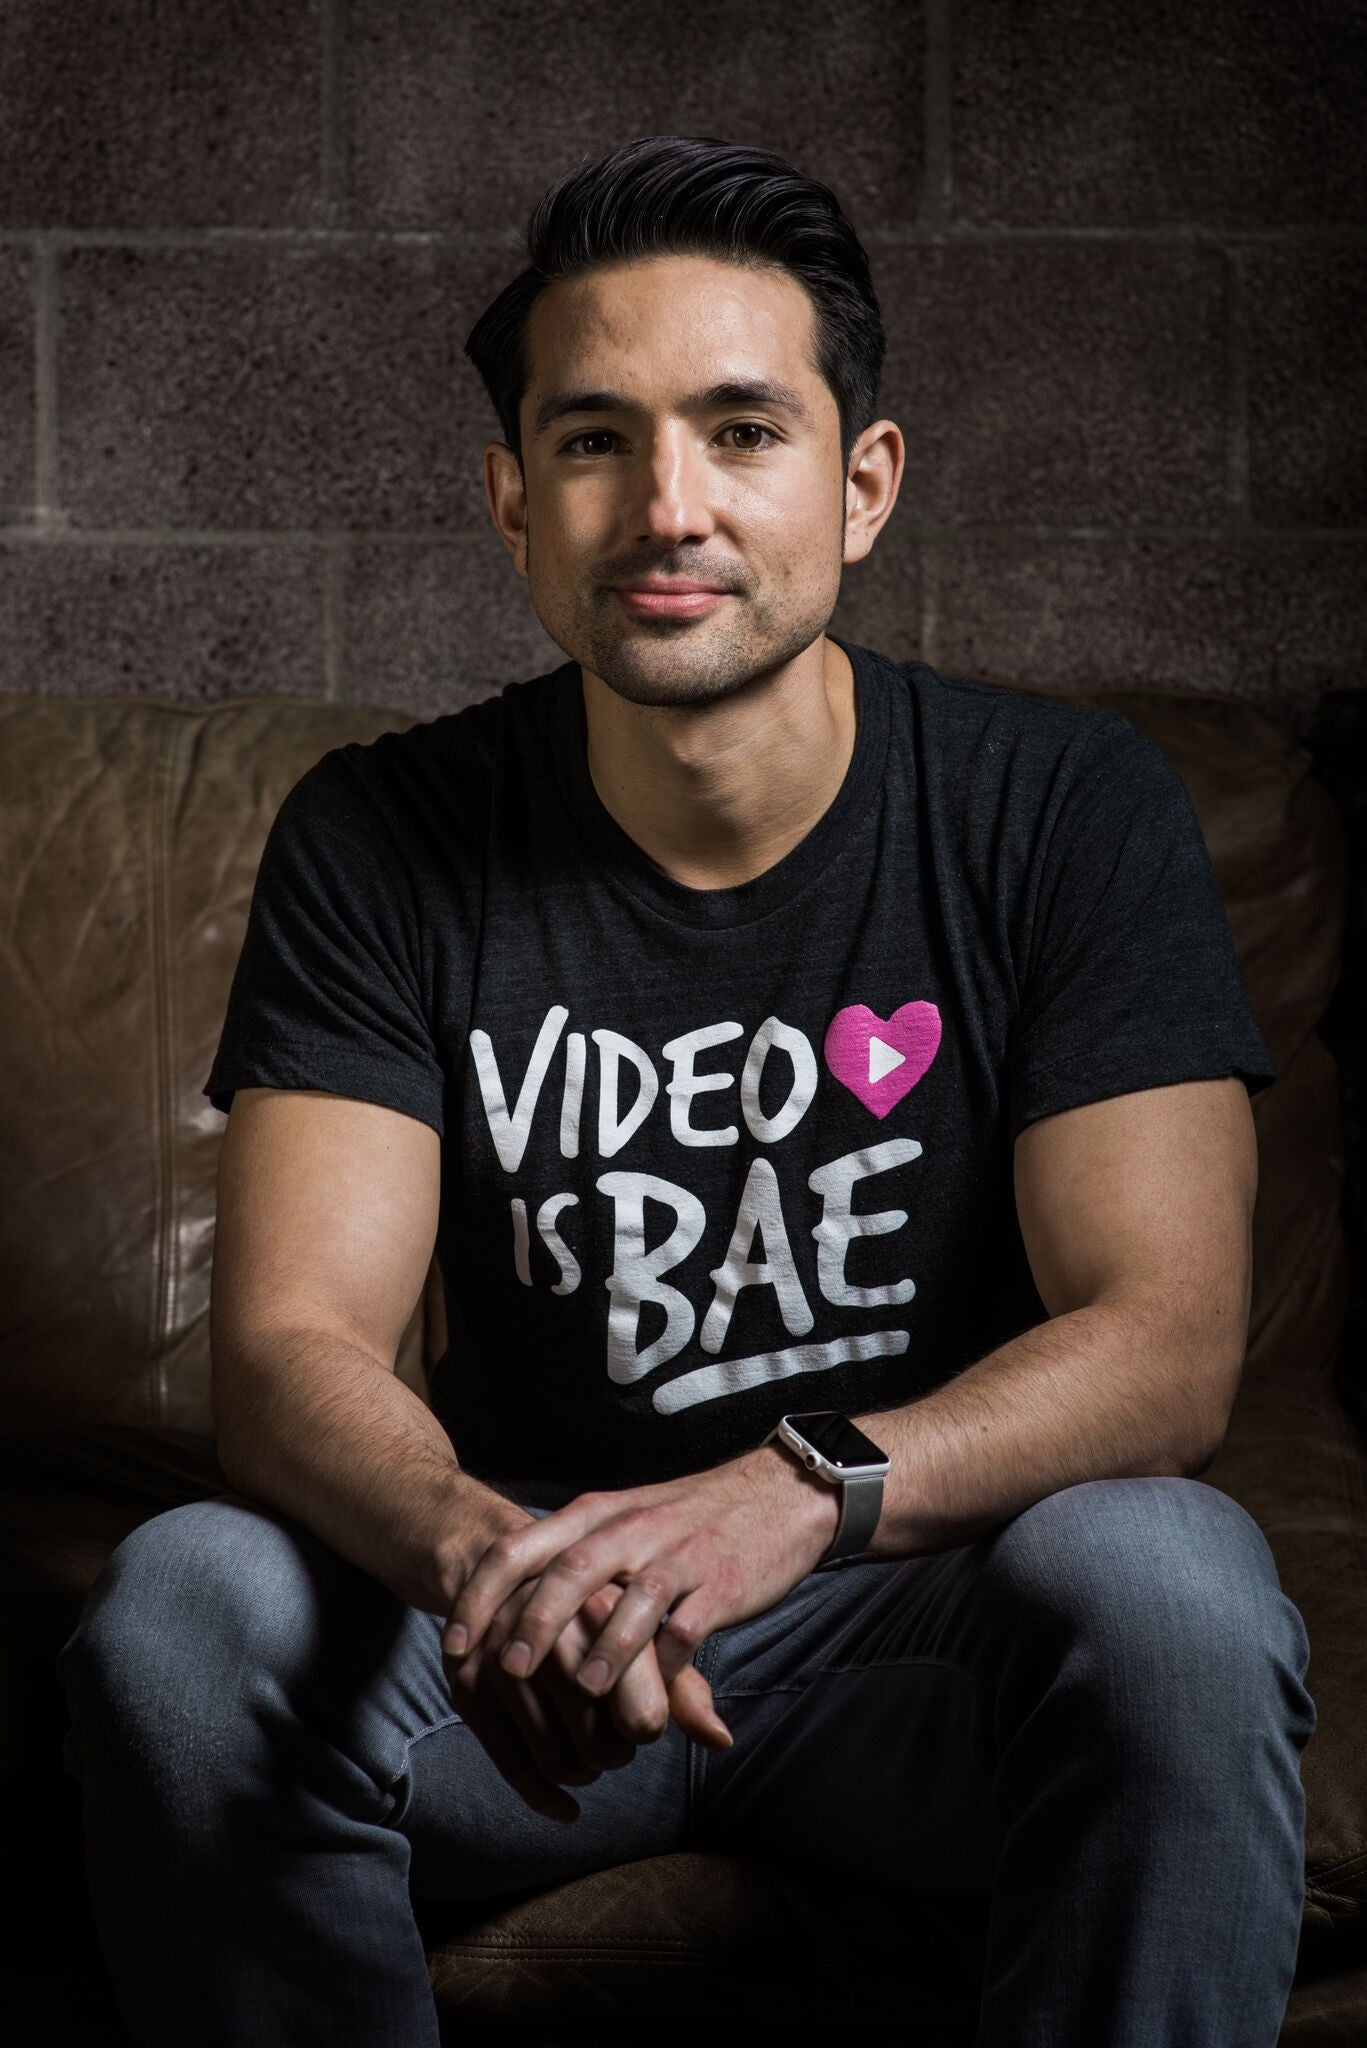 Video is Bae Shirt